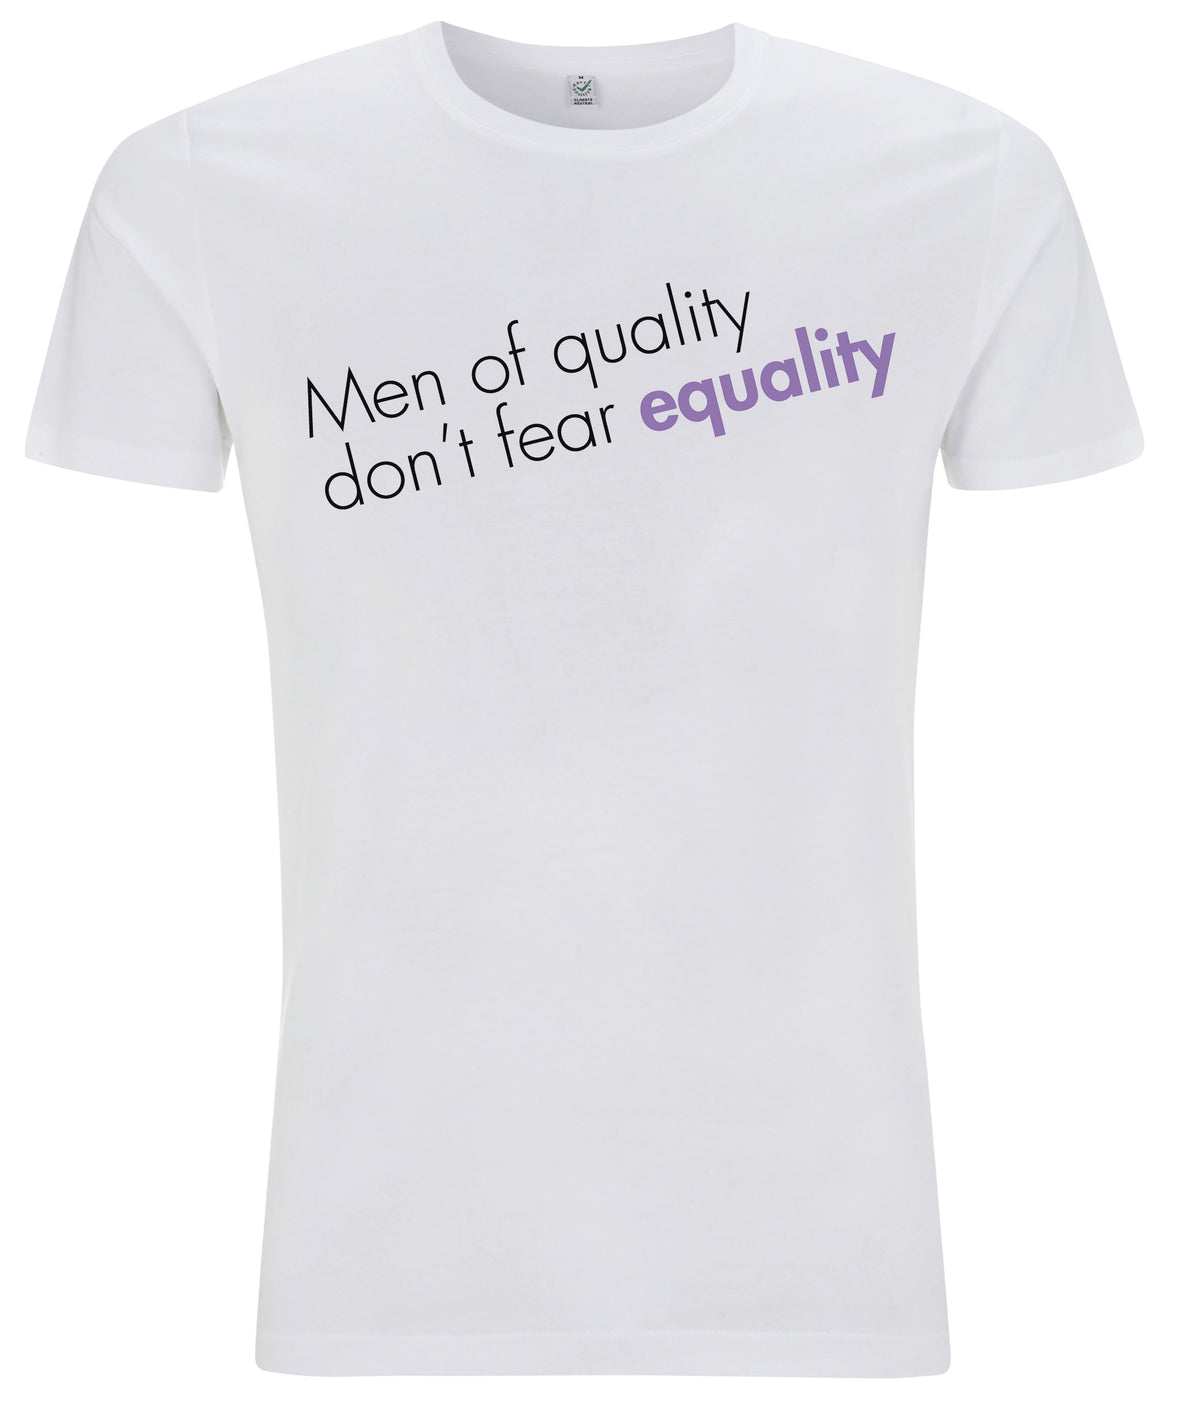 Men Of Quality Don't Fear Equality Organic Mens Feminist T Shirt White